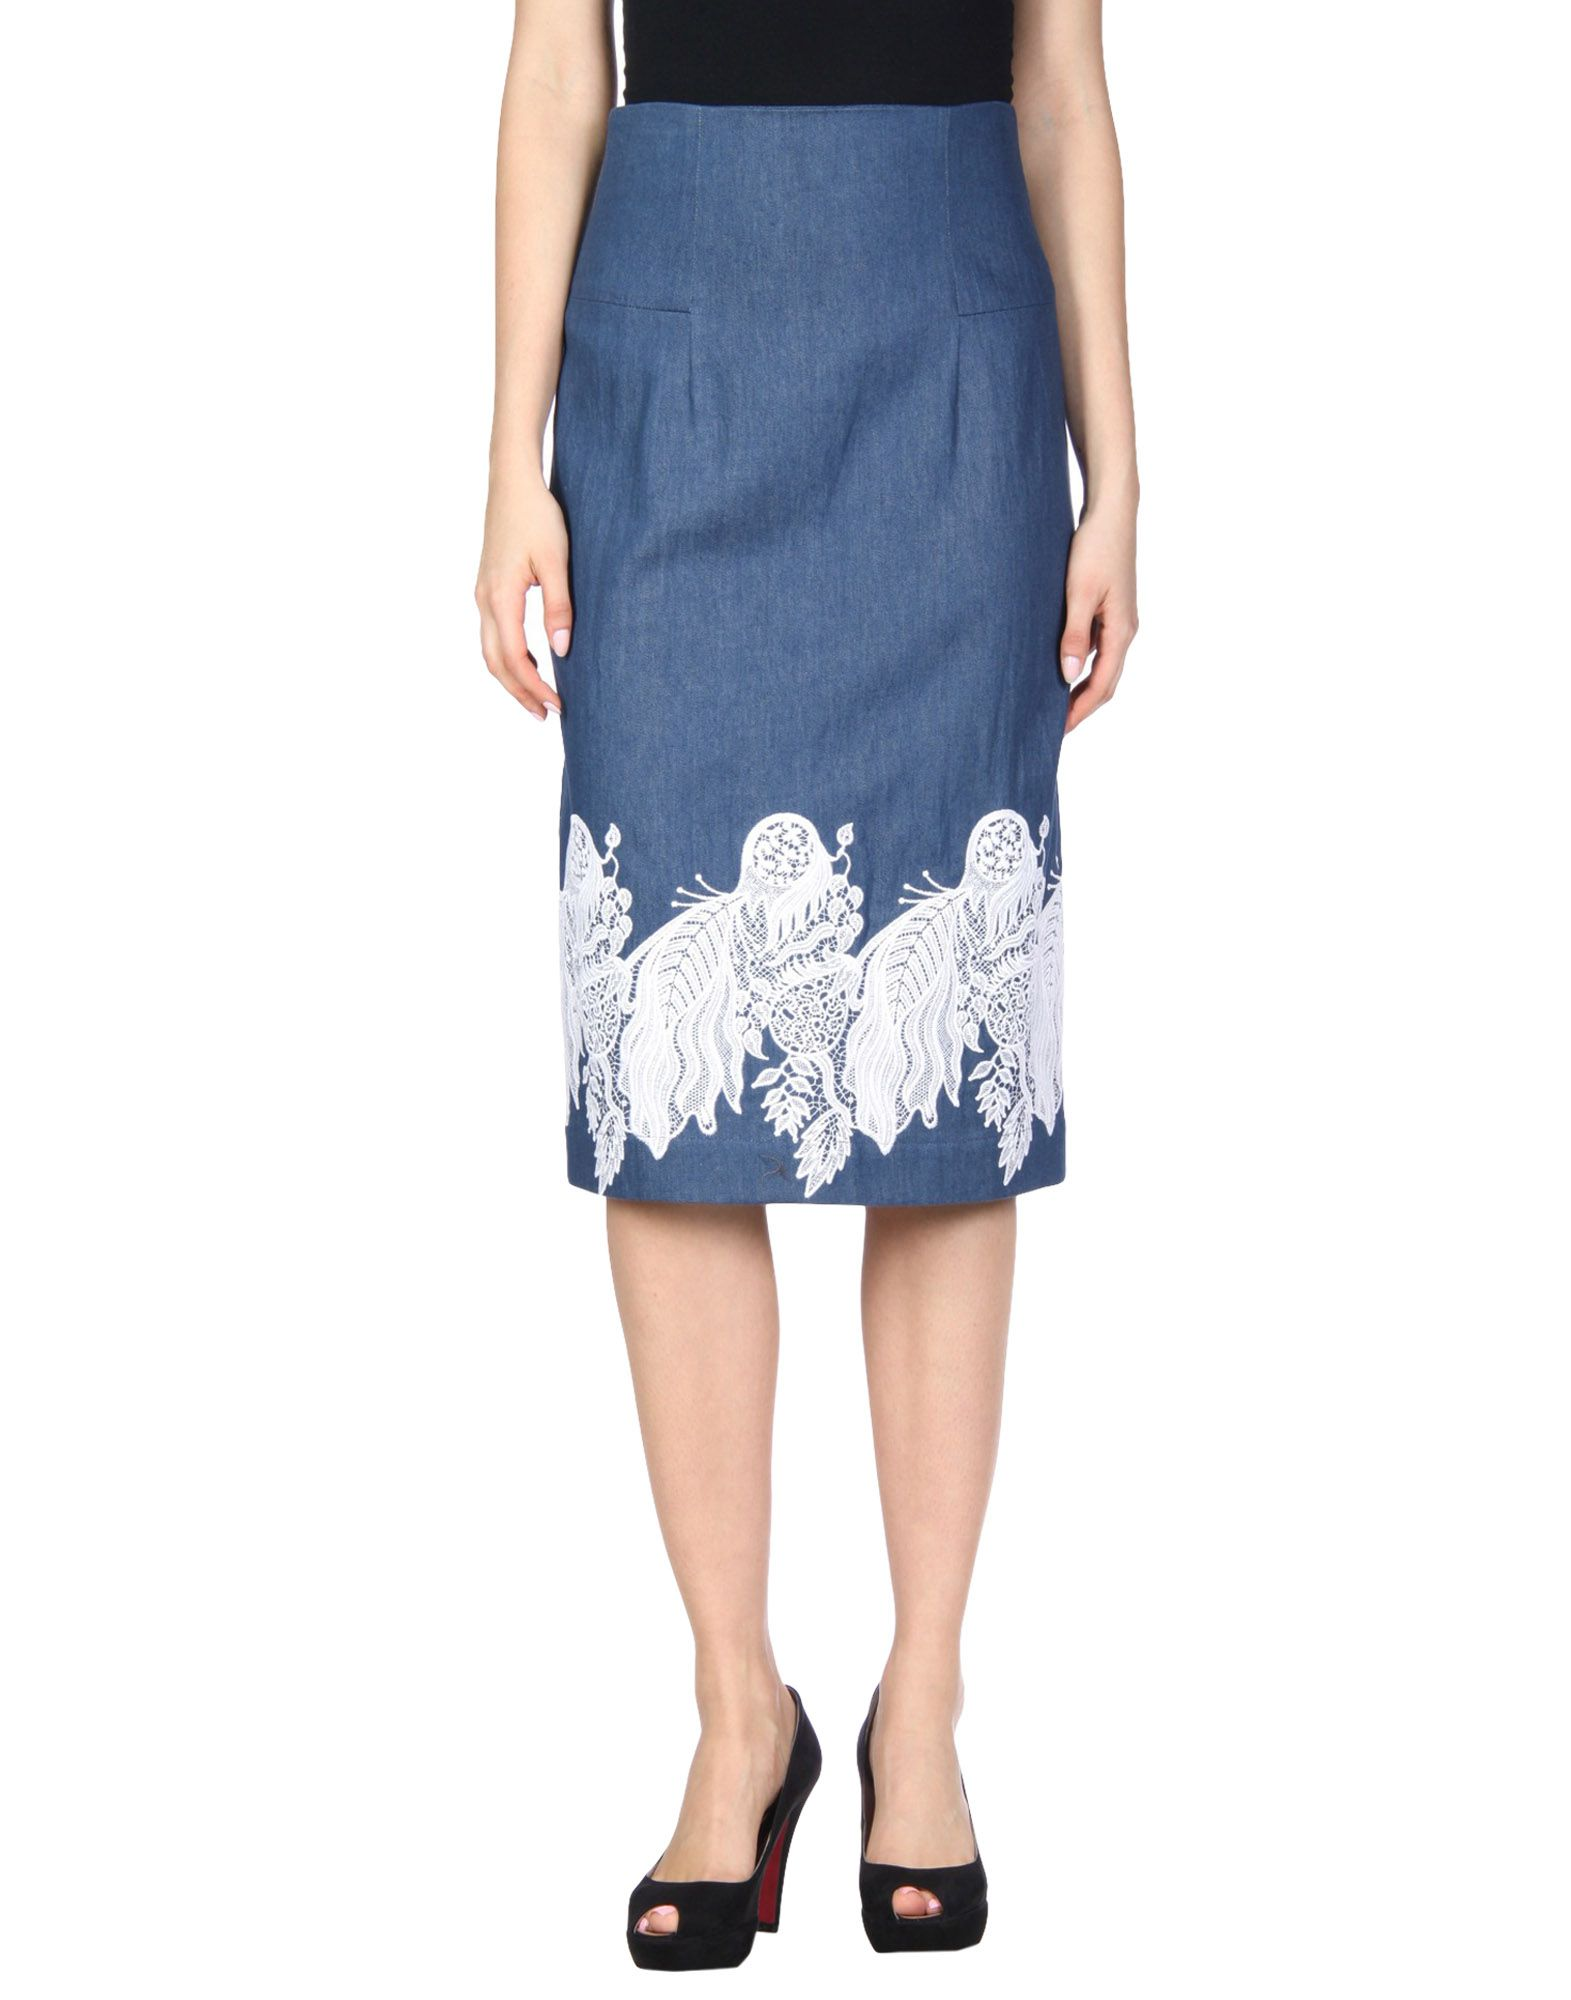 CREATURES OF THE WIND Denim Skirt in Blue